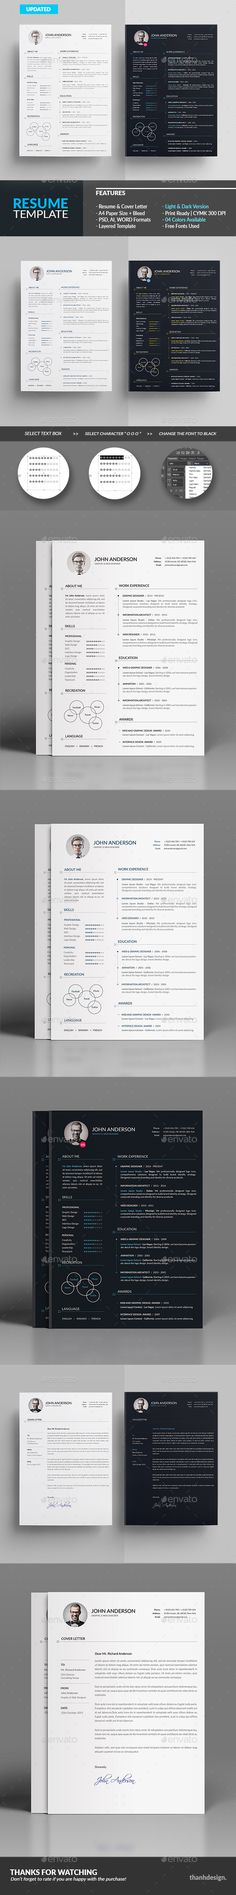 Resume Resume cv, Cv template and Design resume - post my resume